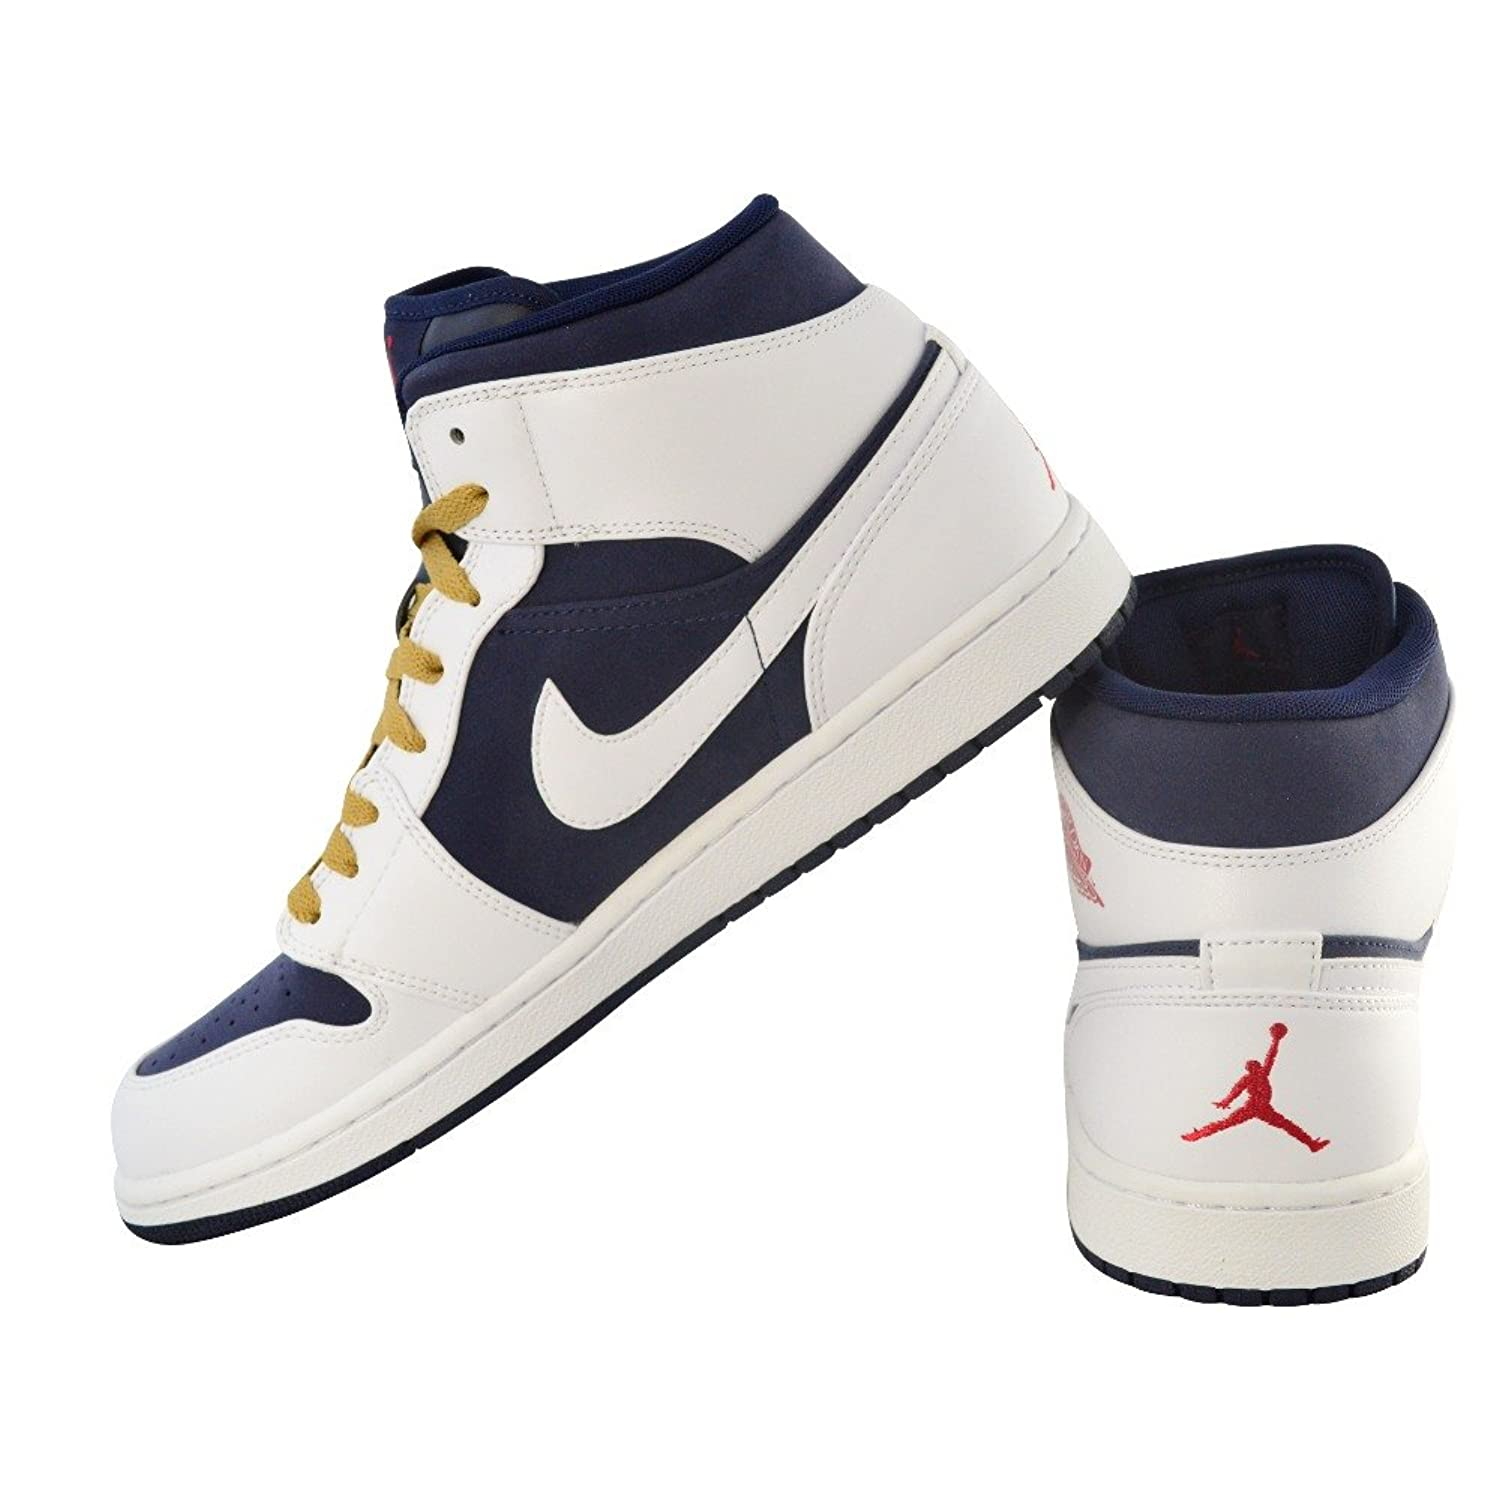 size 40 fe6f8 298ef ... coupon code for amazon nike air jordan 1 phat mid olympic 364770 400  mens sz.